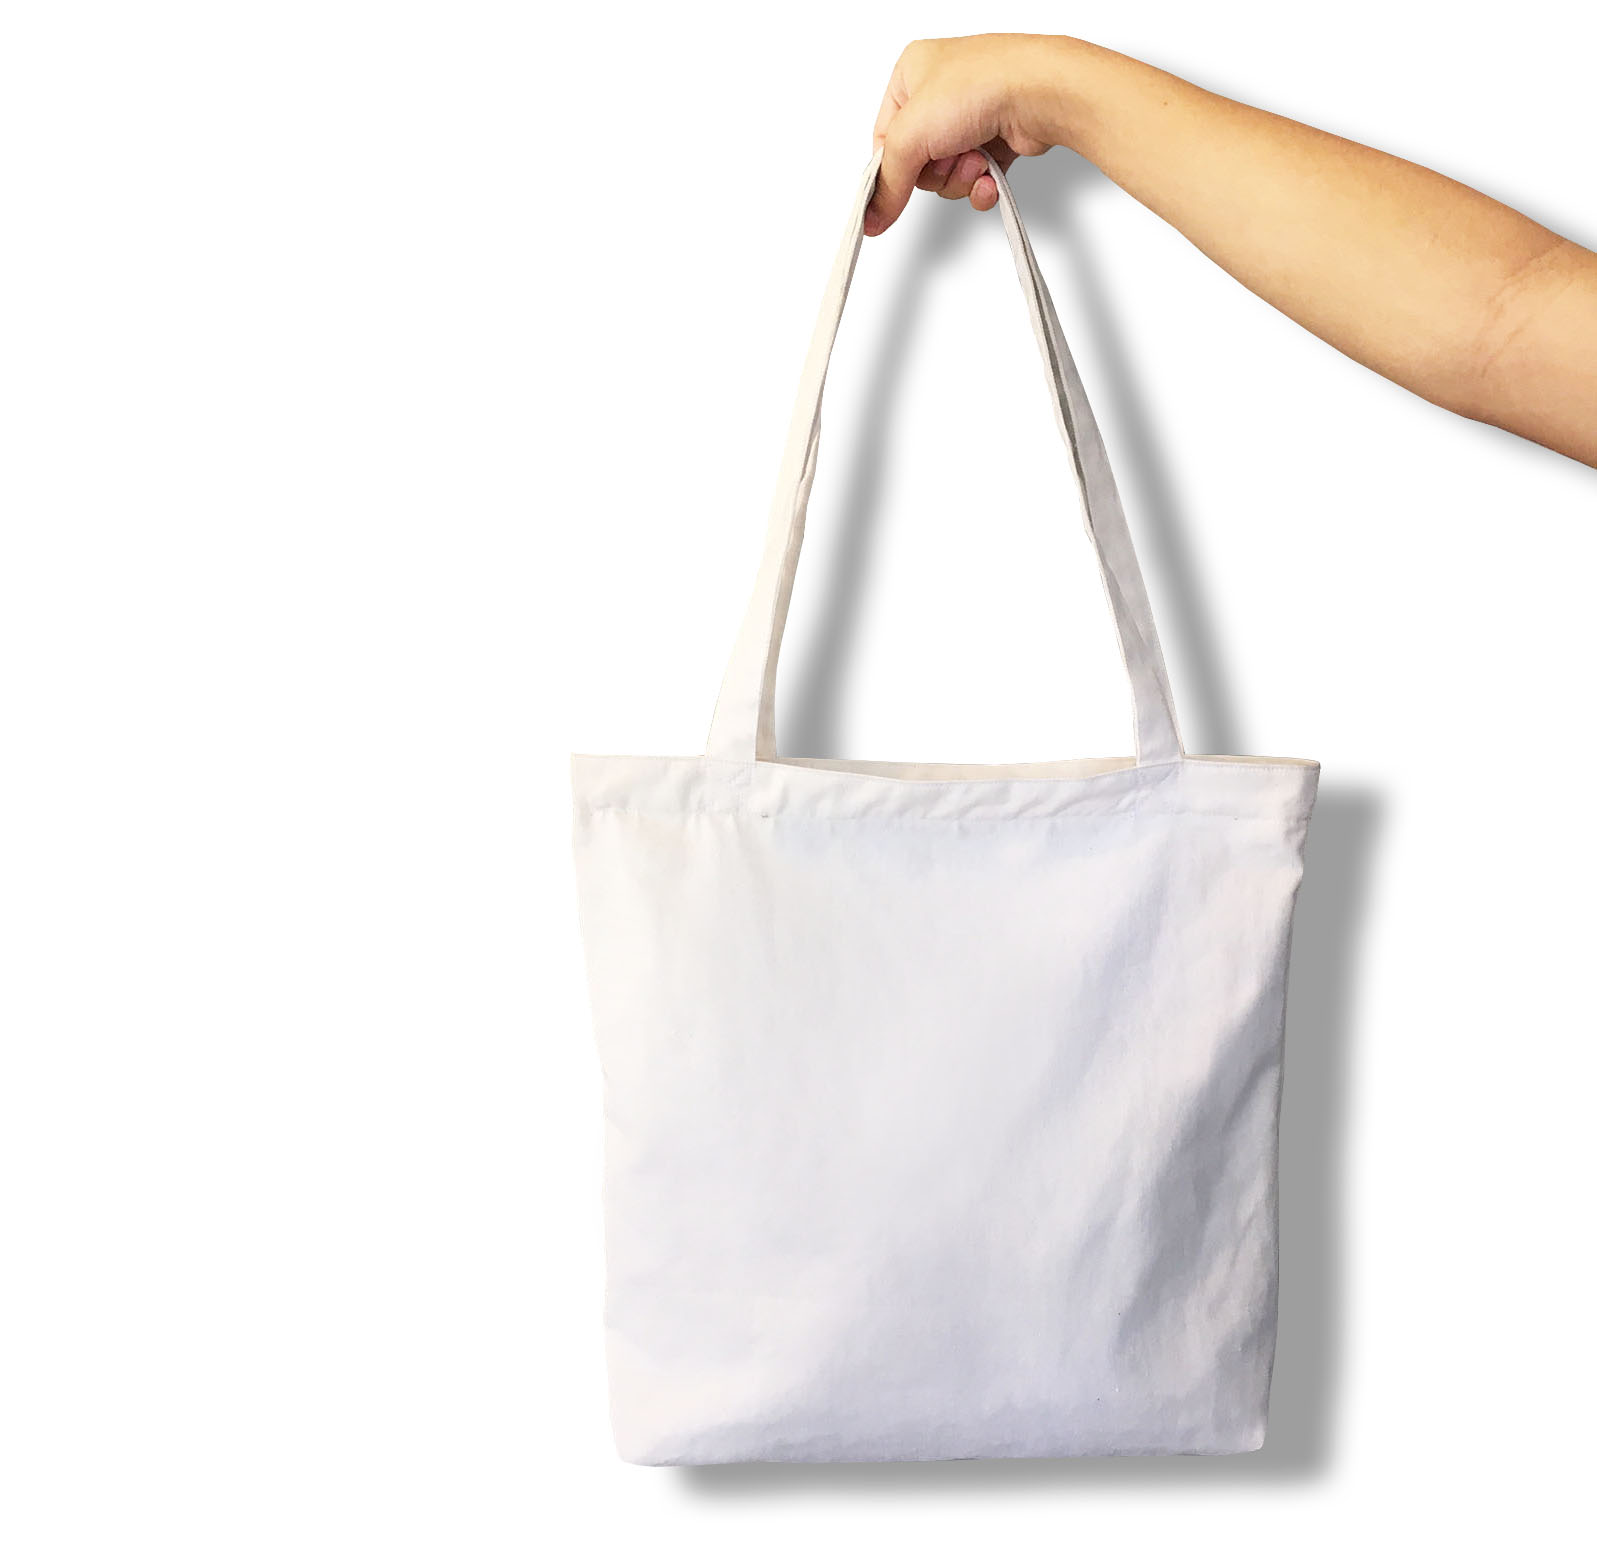 Large canvas bag for grocery